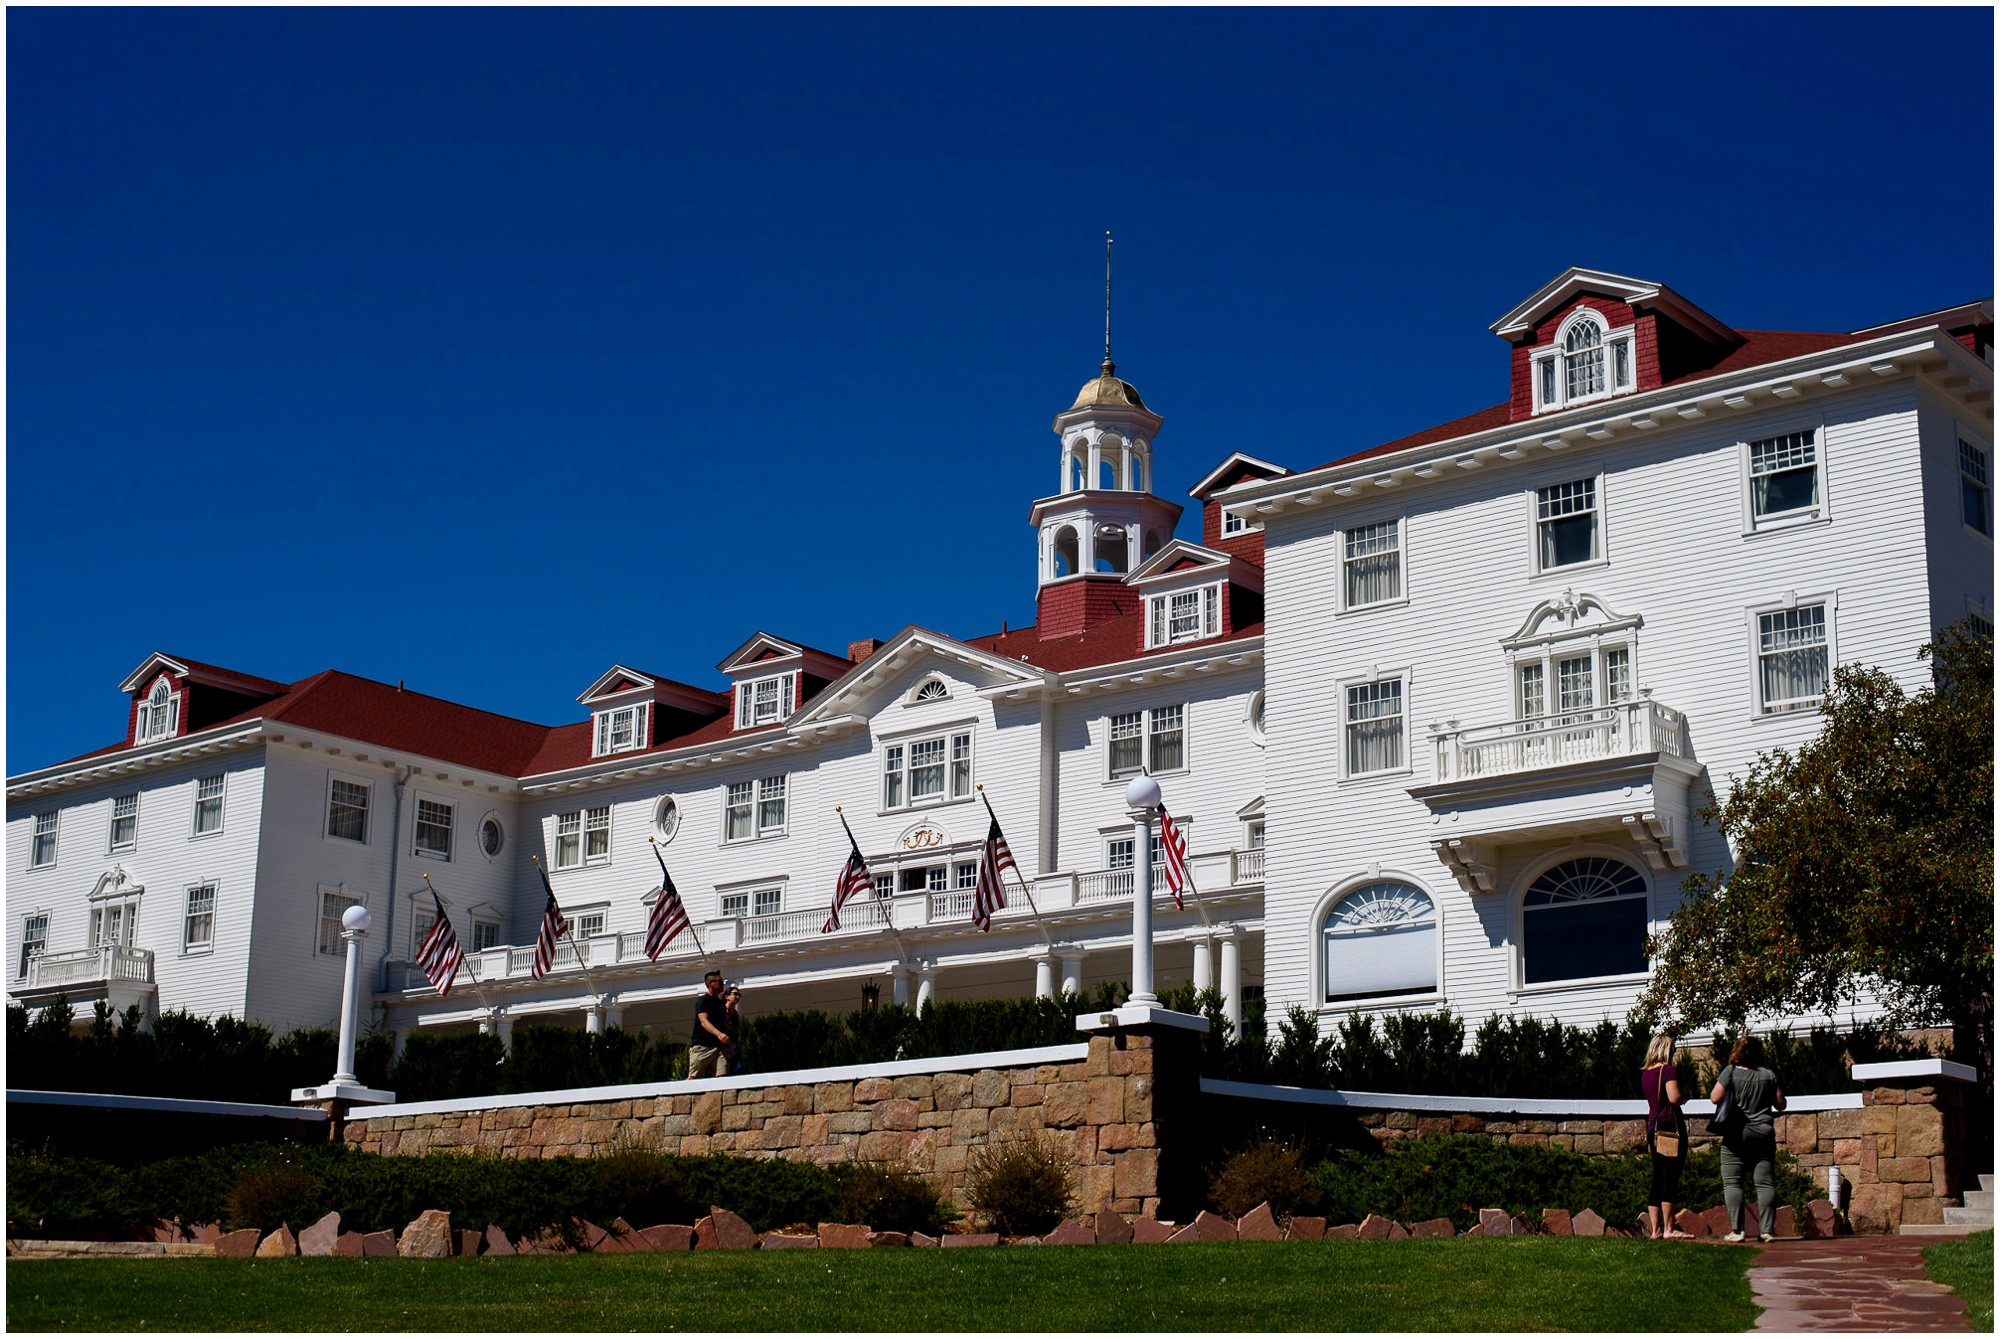 The Stanley Hotel on sunny blue sky day